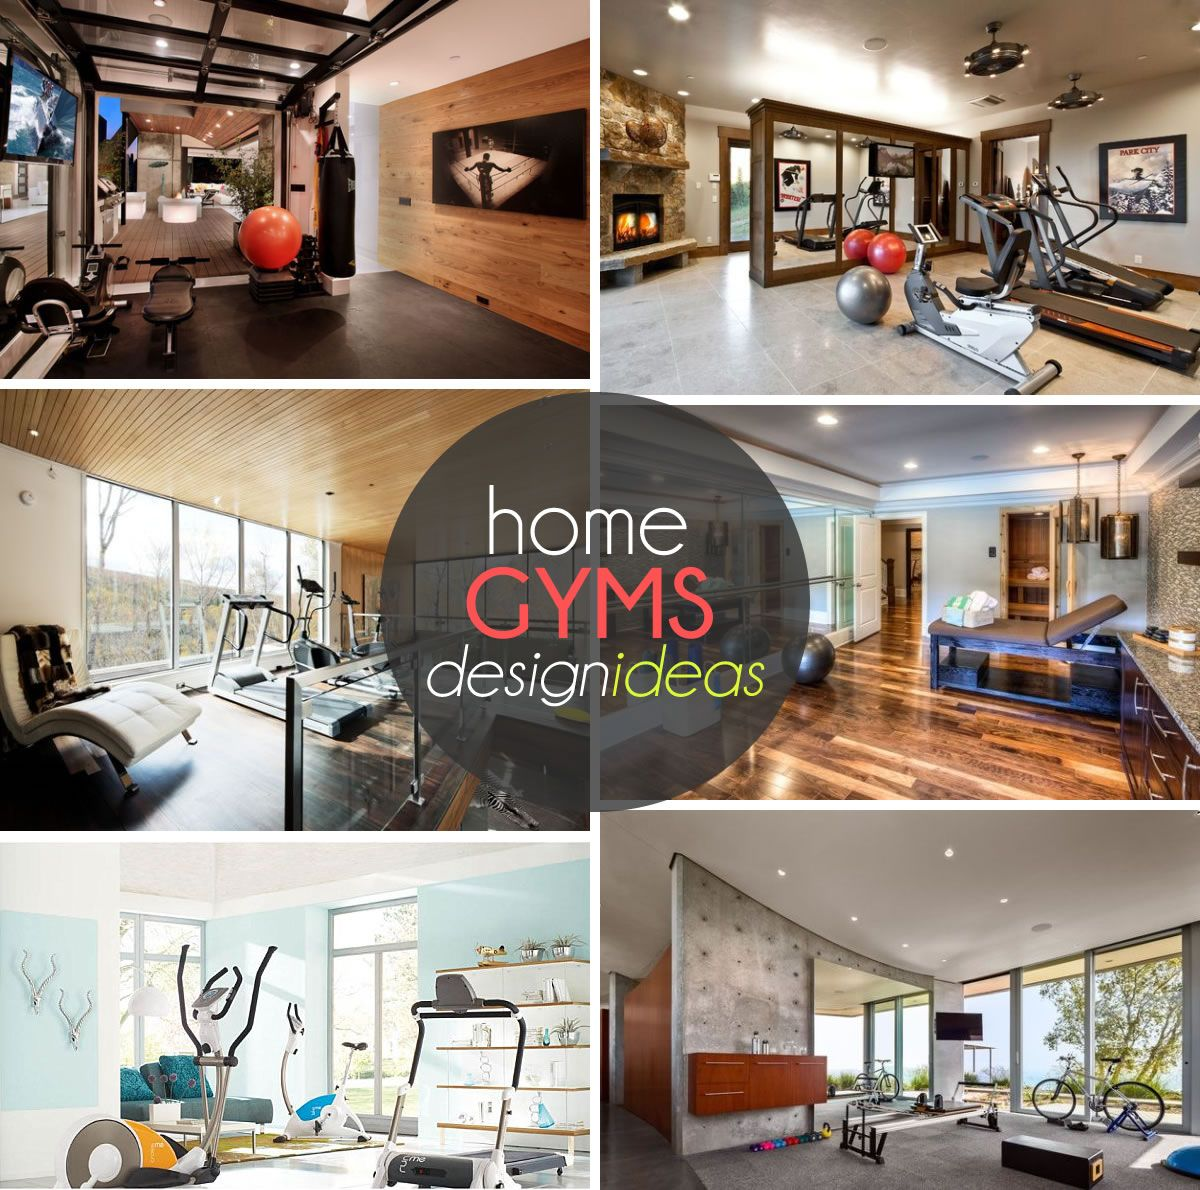 Decor Center Gym Design On Pinterest Gym Interior Fitness Design And